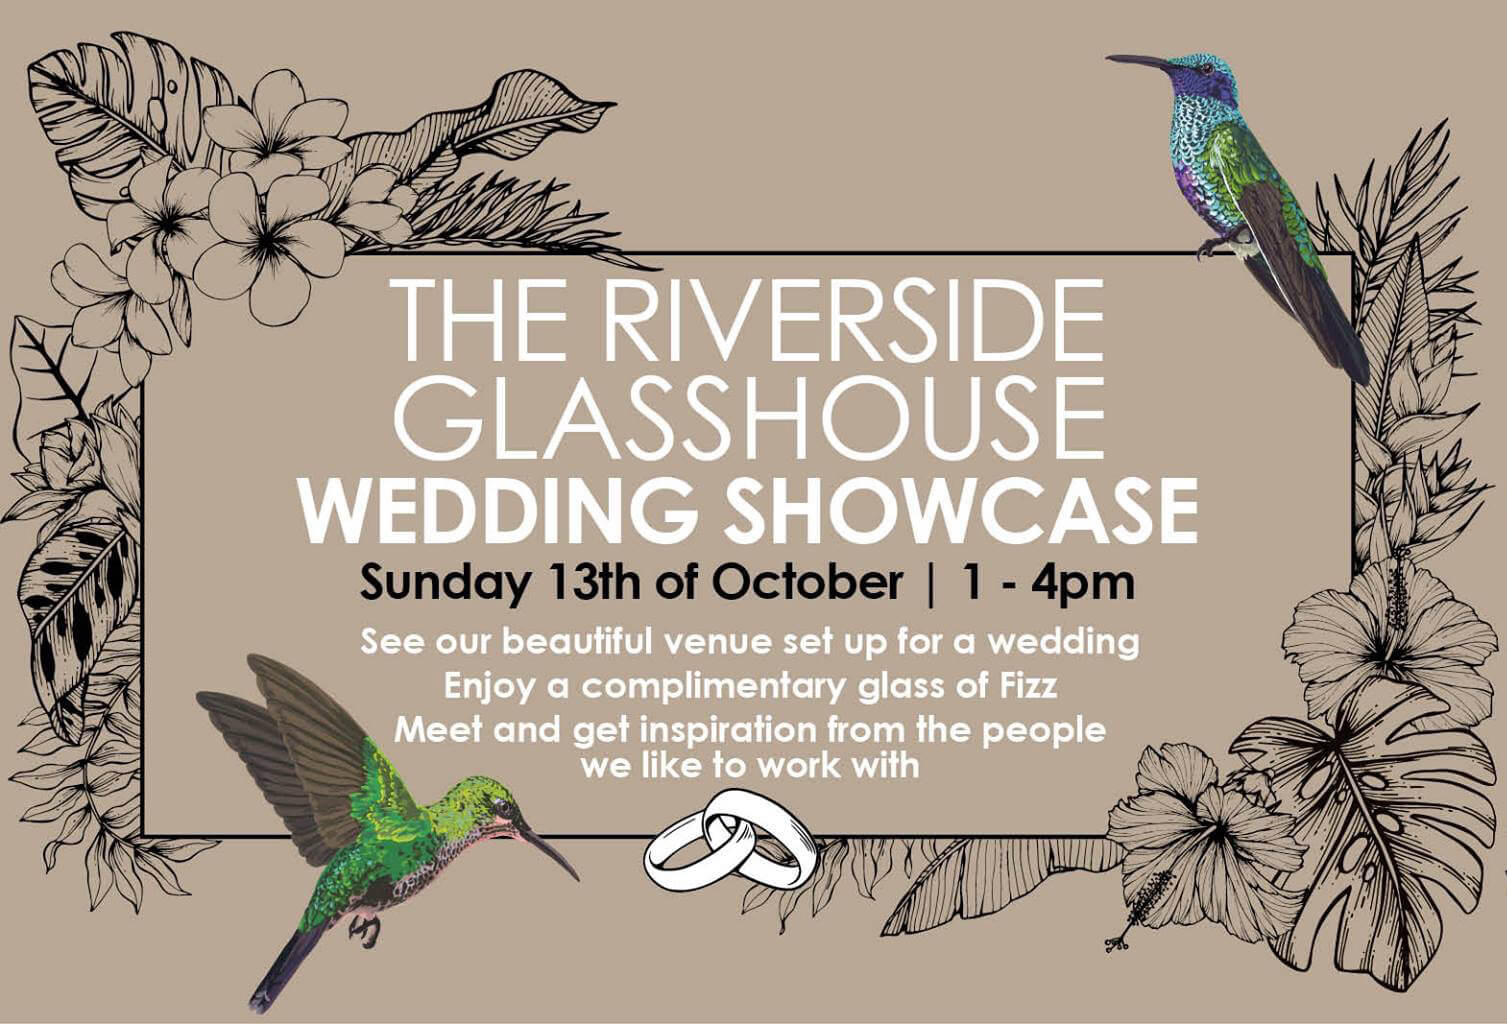 The Riverside Glasshouse Wedding Showcase